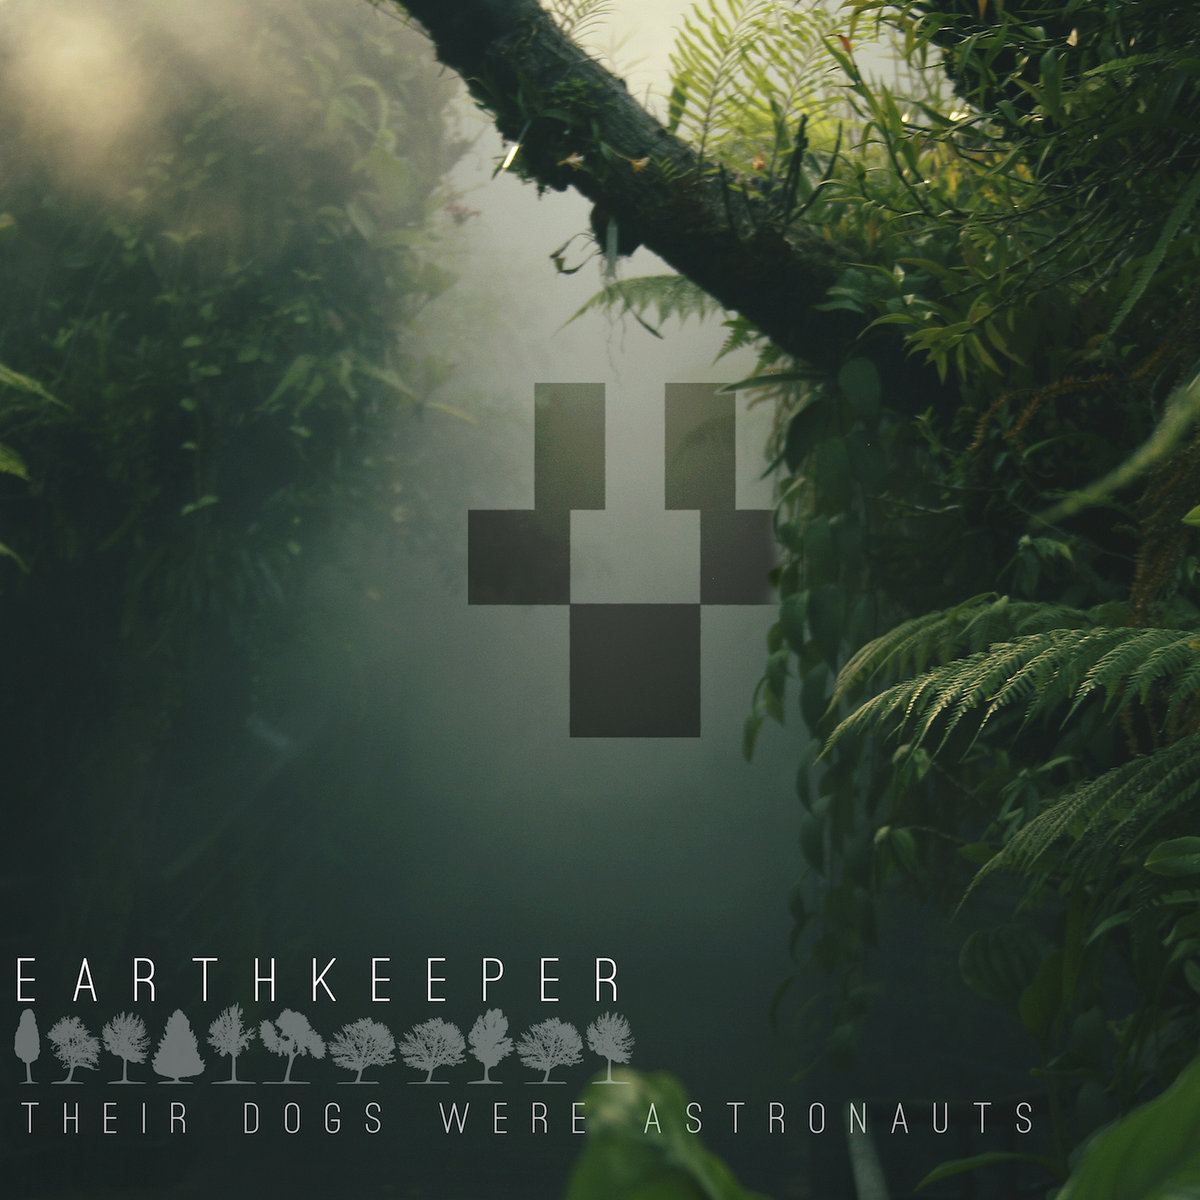 Their Dogs Were Astronauts - He Who Saw The Light @ 'Earthkeeper' album (instrumental metal, metal)